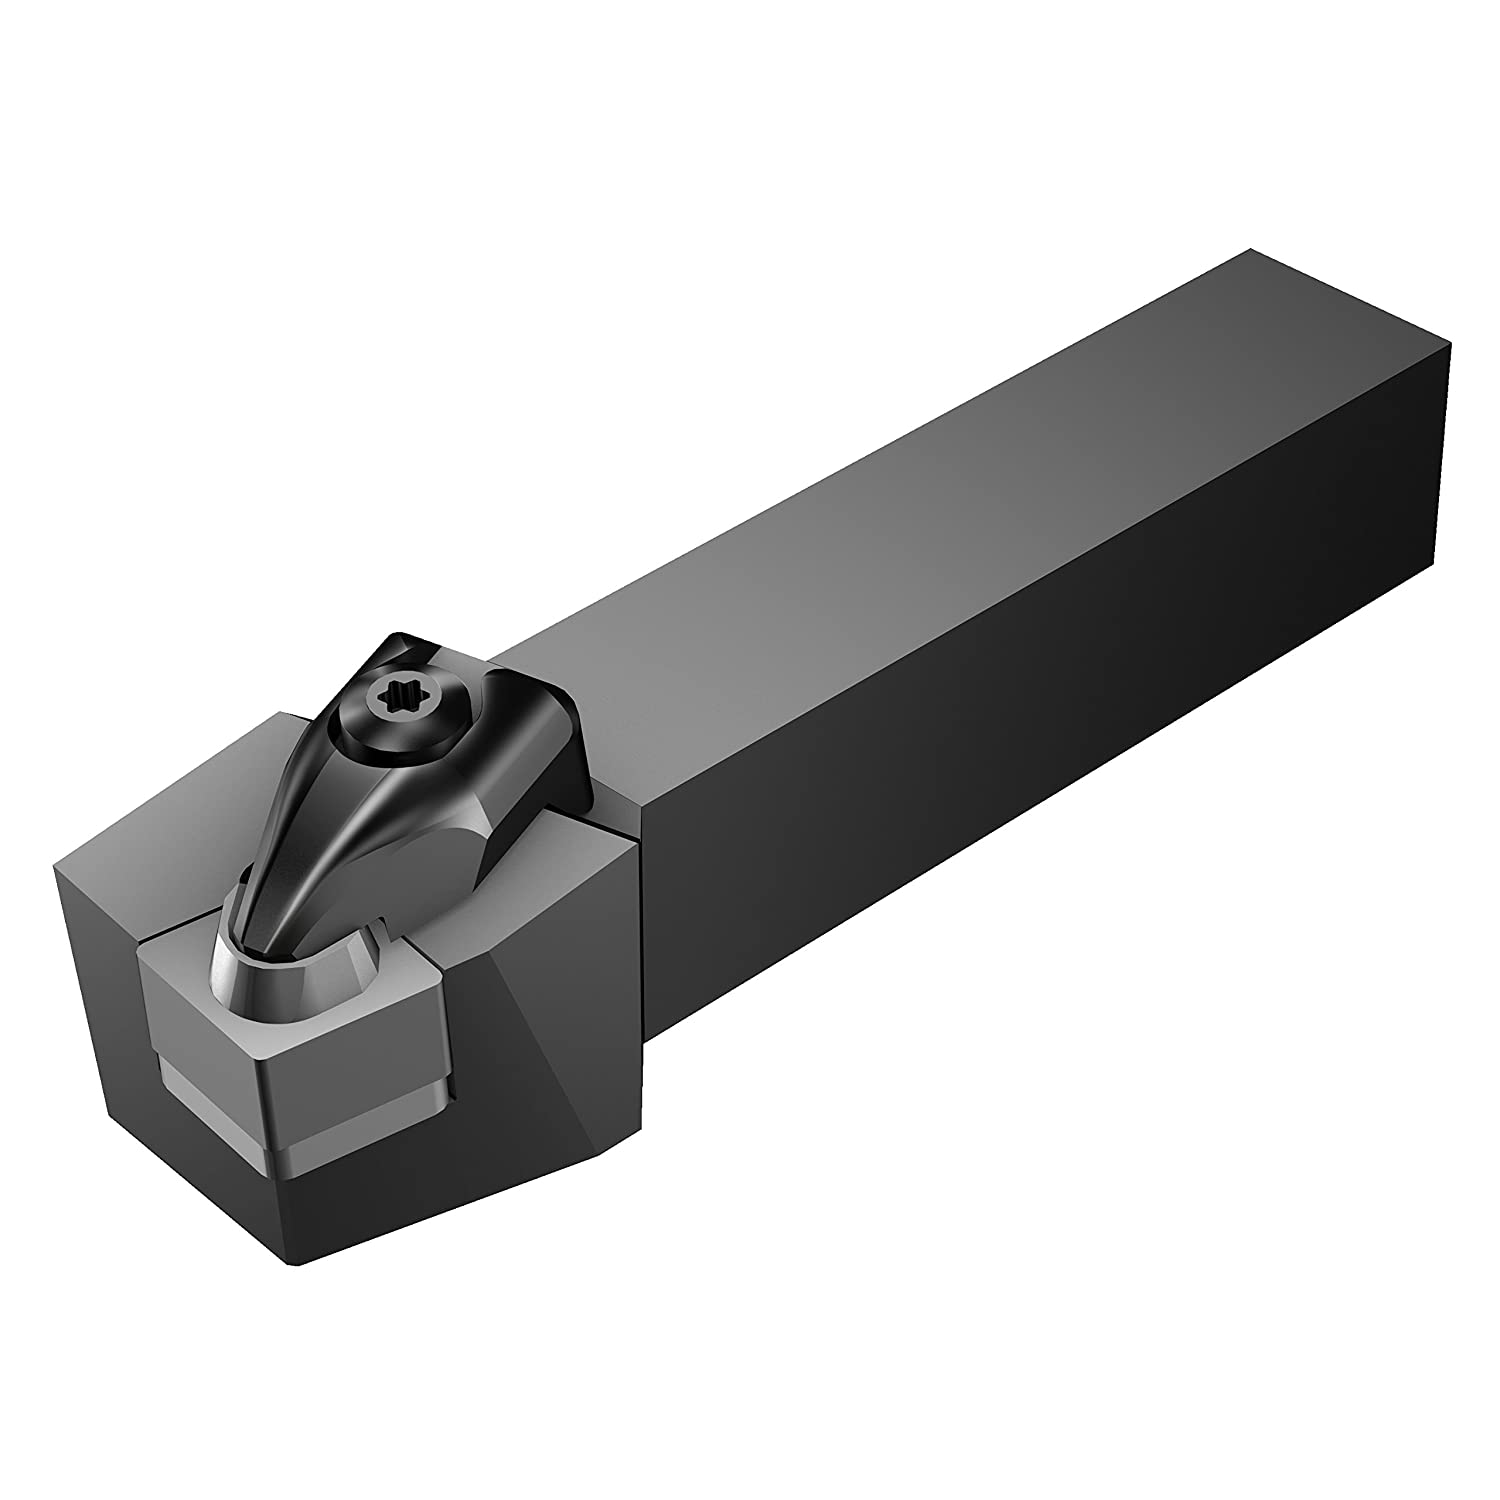 Sandvik Coromant CCRNR 204DM1-4 Steel CoroTurn RC Rigid Clamp Tool Holder Right Hand Cut 1.250 Shank Width